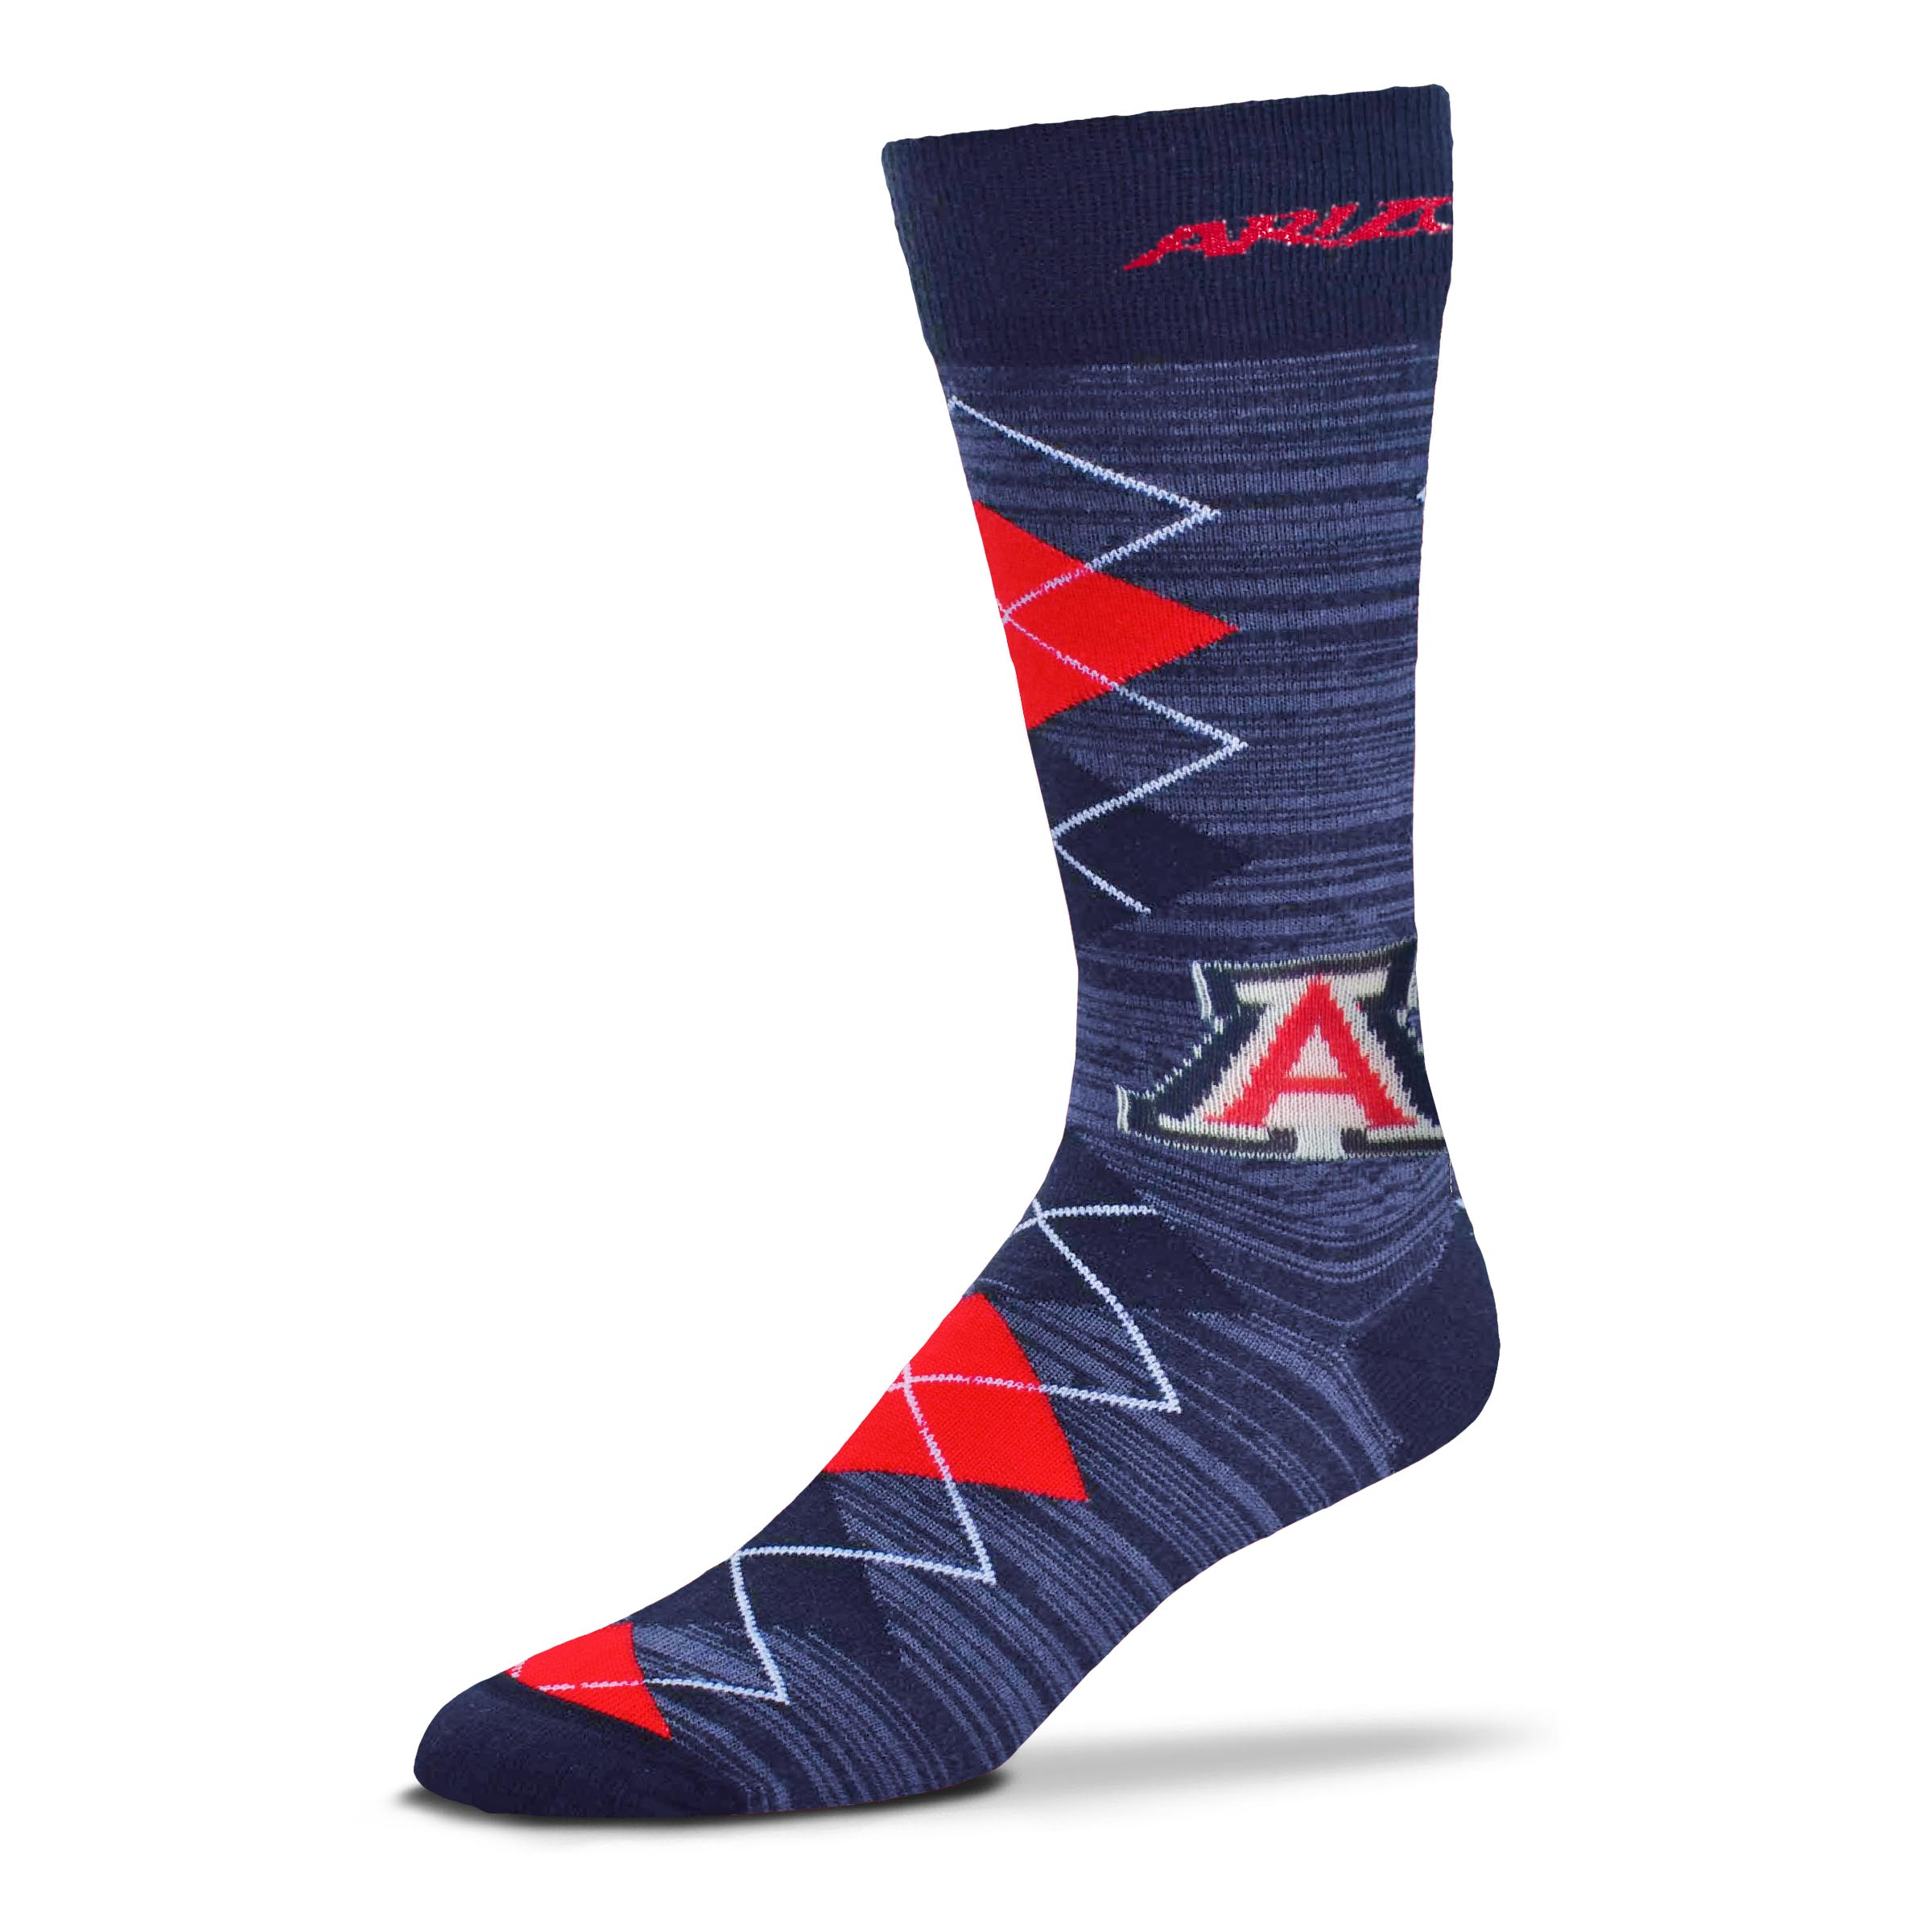 Cover Image For Socks: Arizona Wildcats Fan Nation Argyle Crew Socks